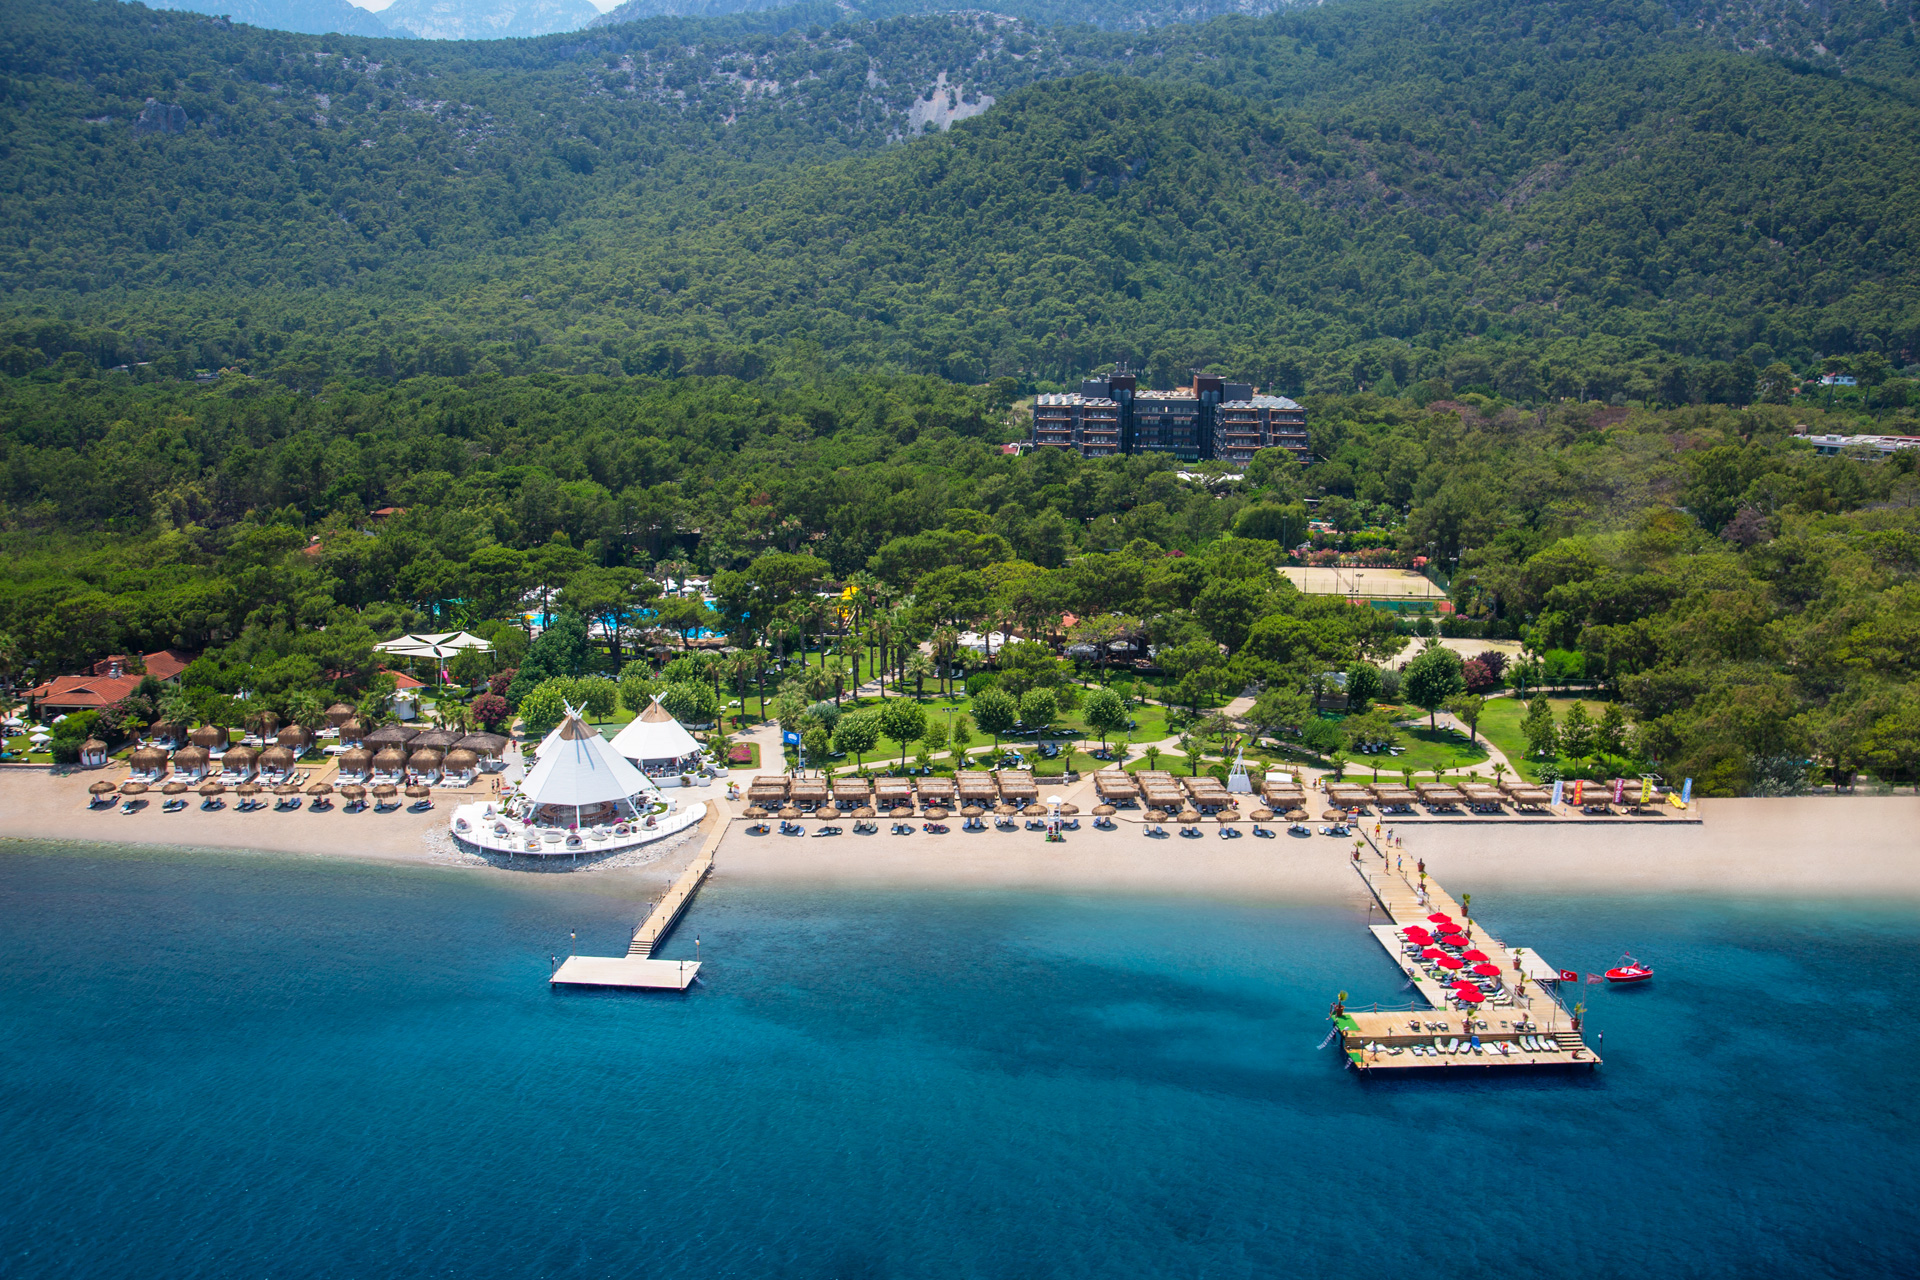 Renaissance Antalya Beach Resort | Aerial View